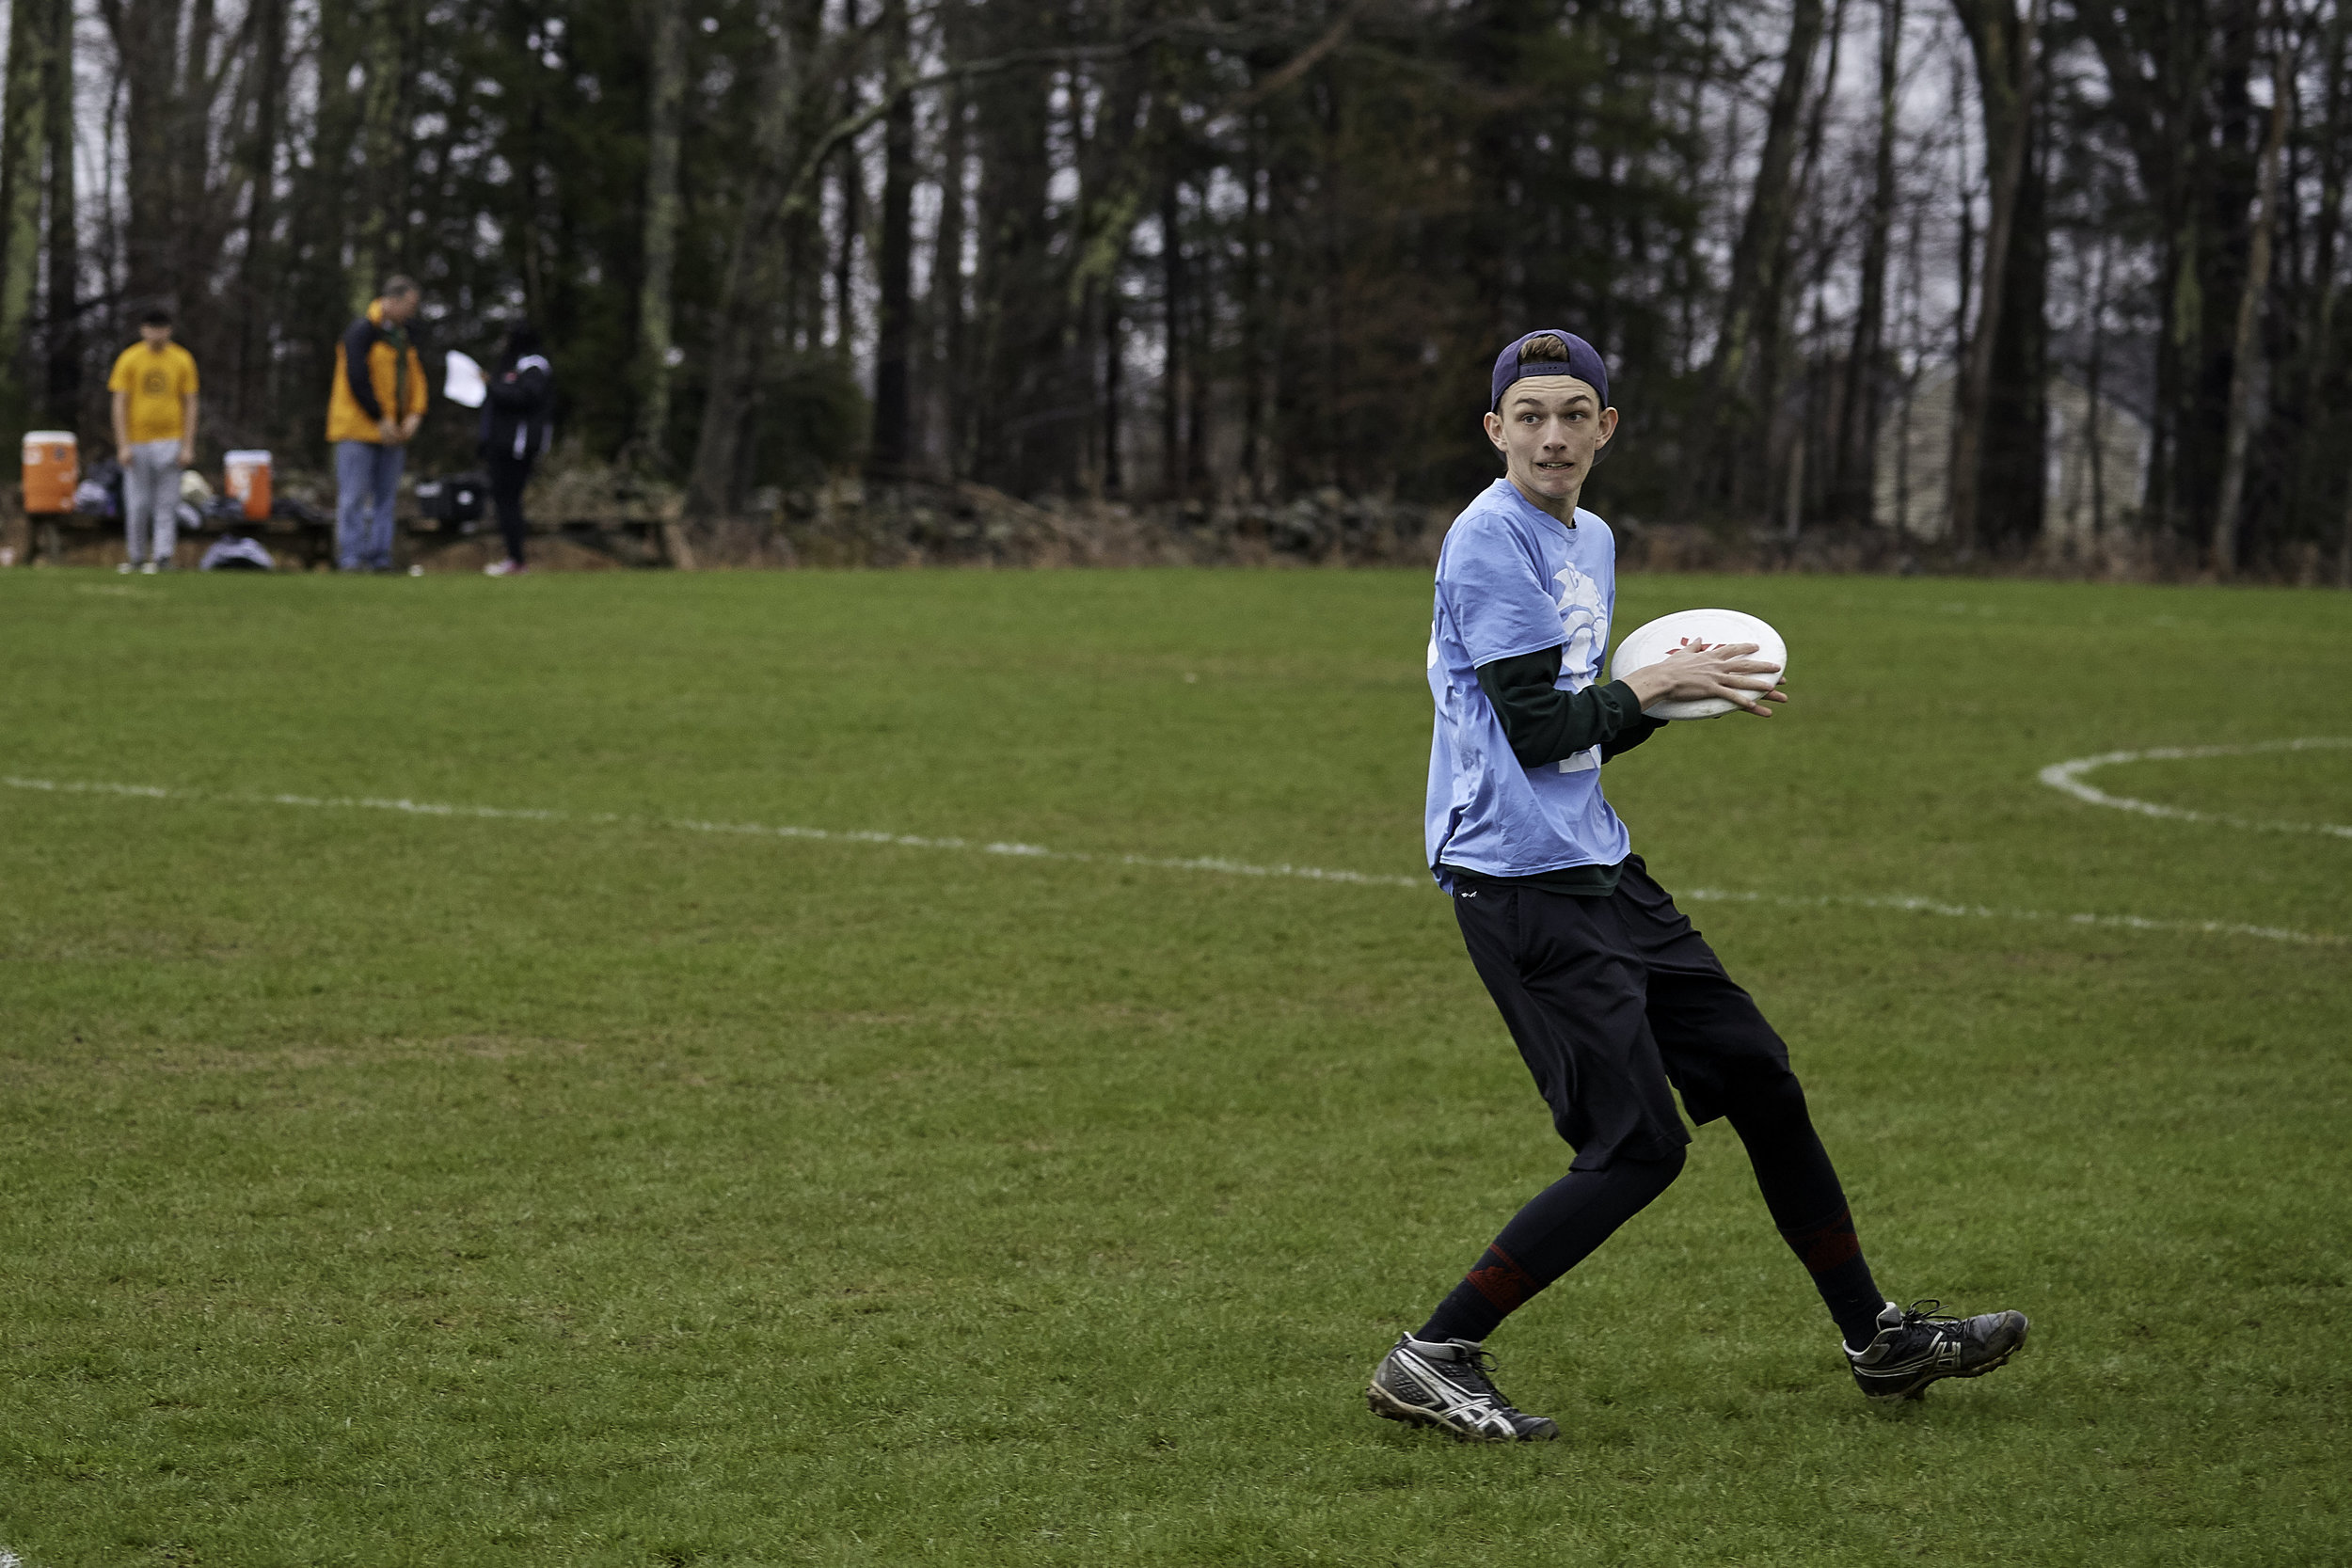 Ultimate Frisbee vs. Eagle Hill School - May 3, 2019 - 188306.jpg